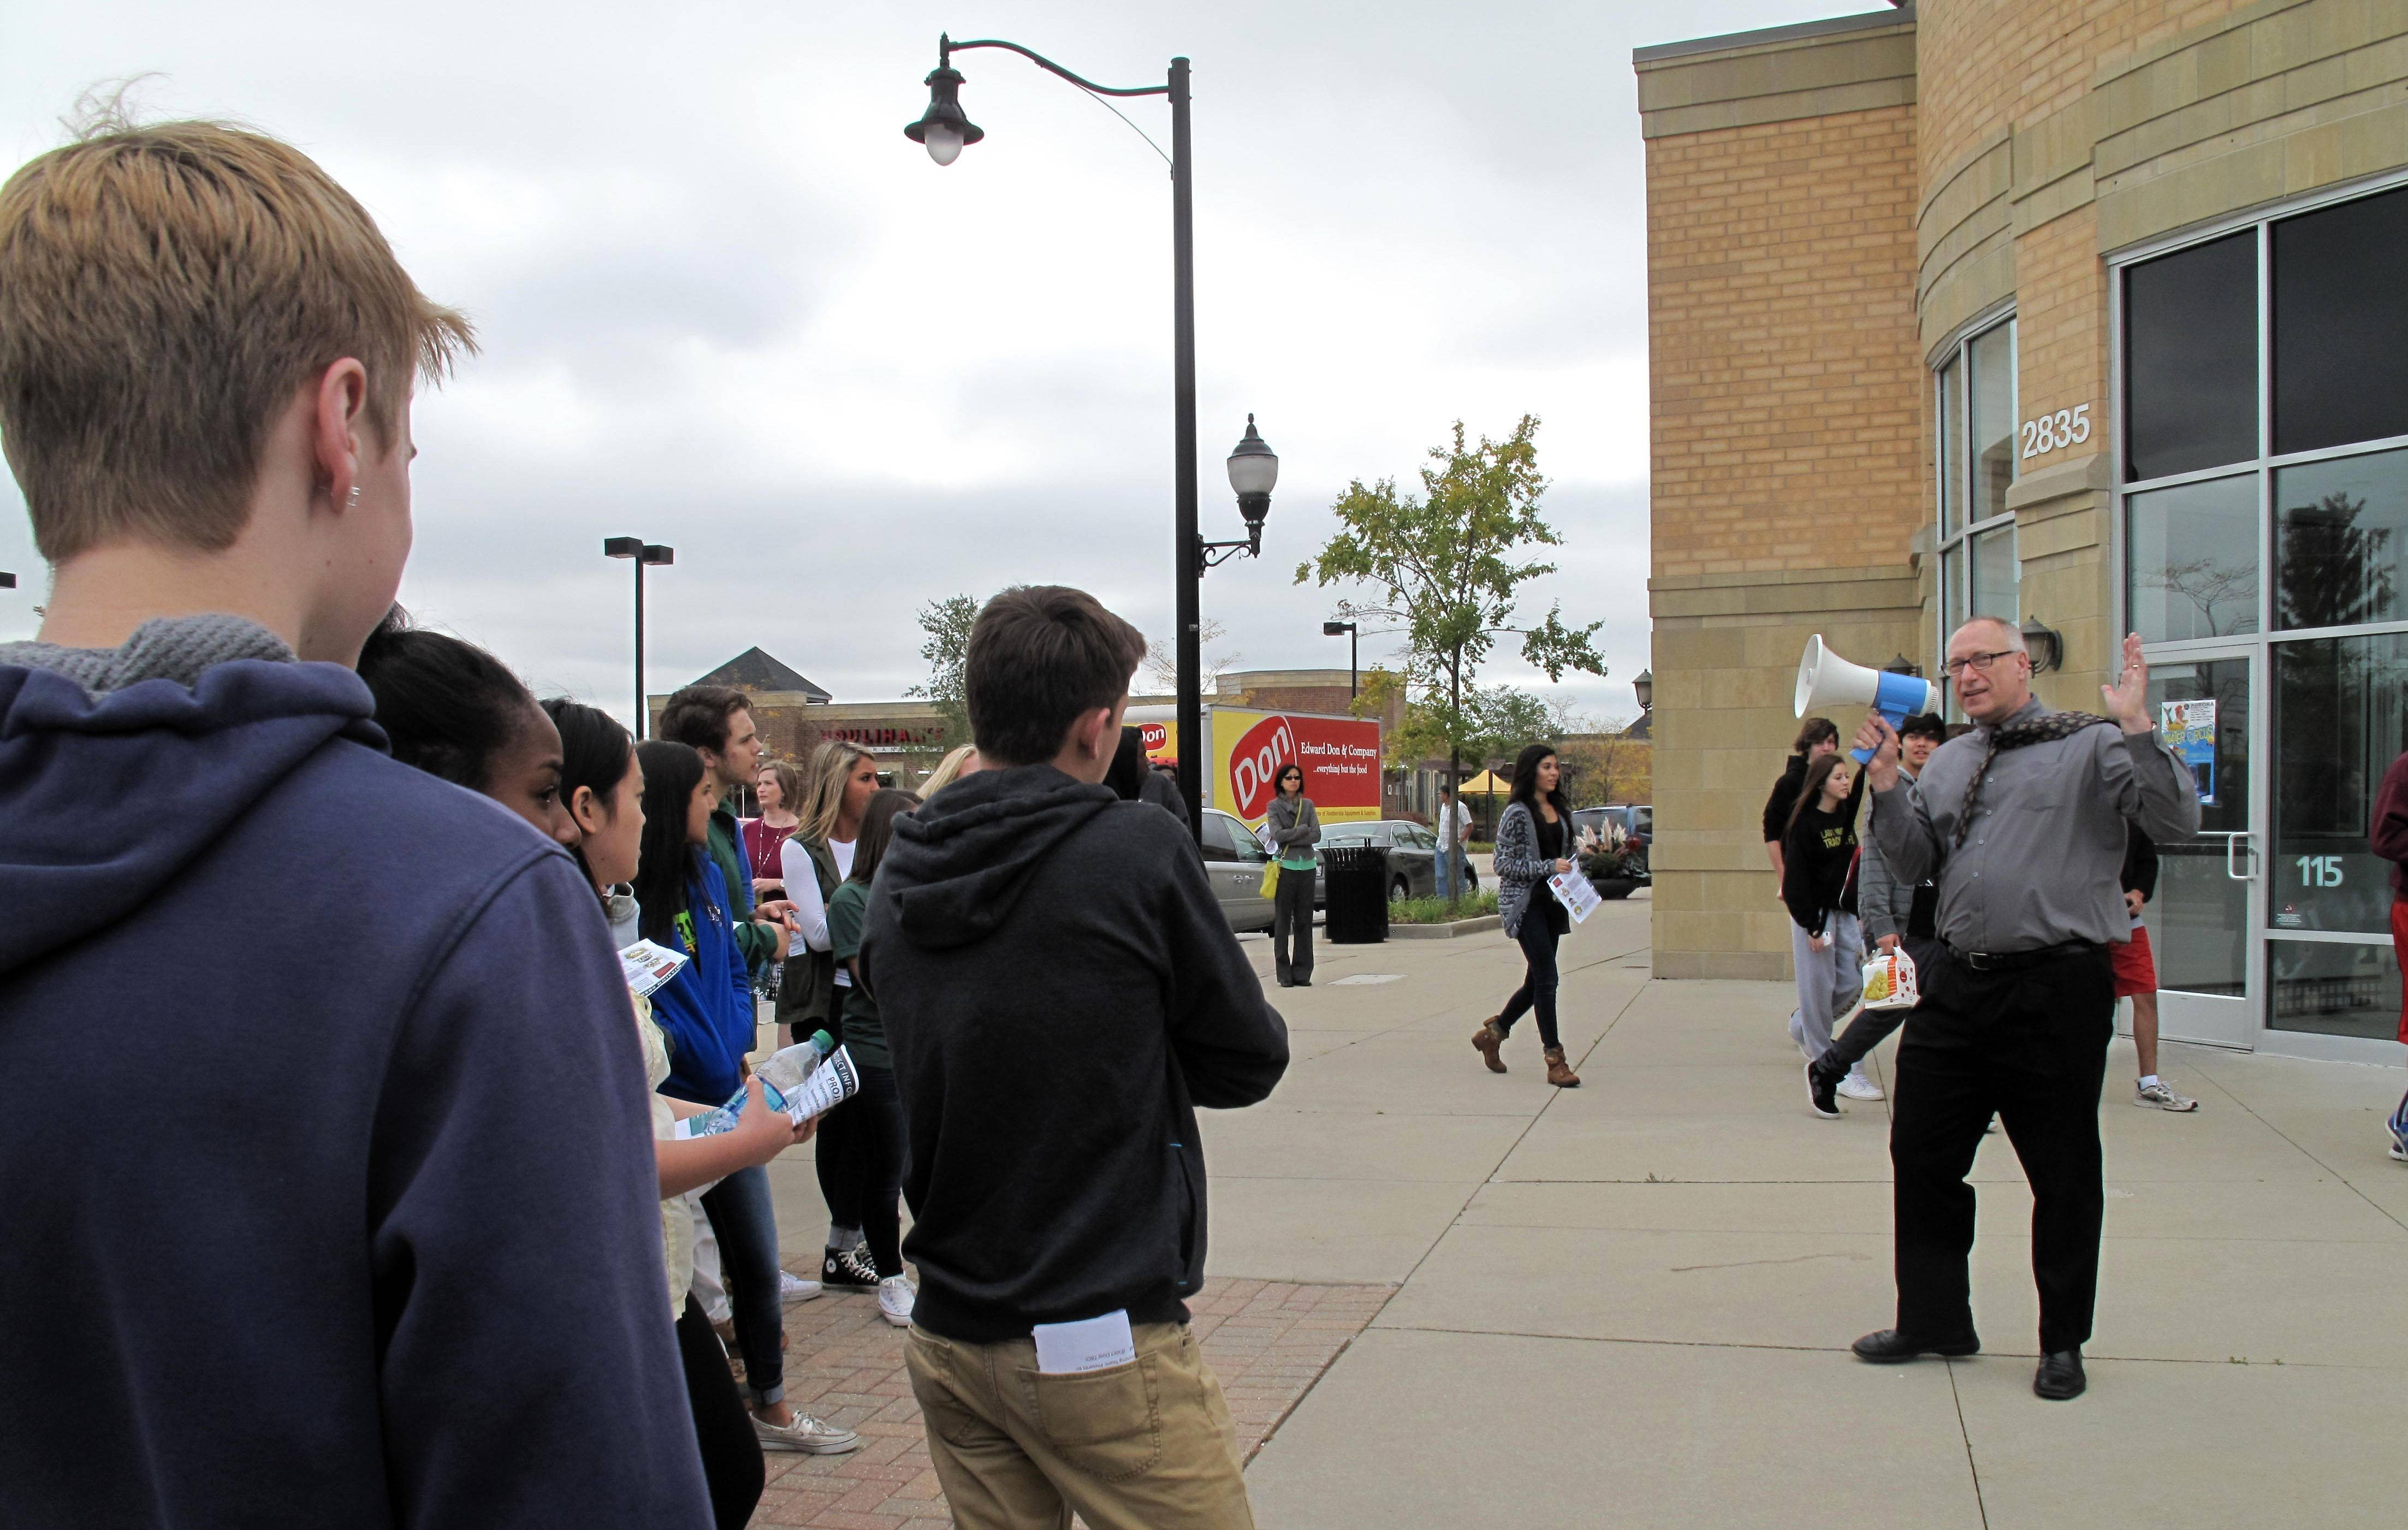 Dist. 204 students promote Naperville development in 'real-life marketing situation'